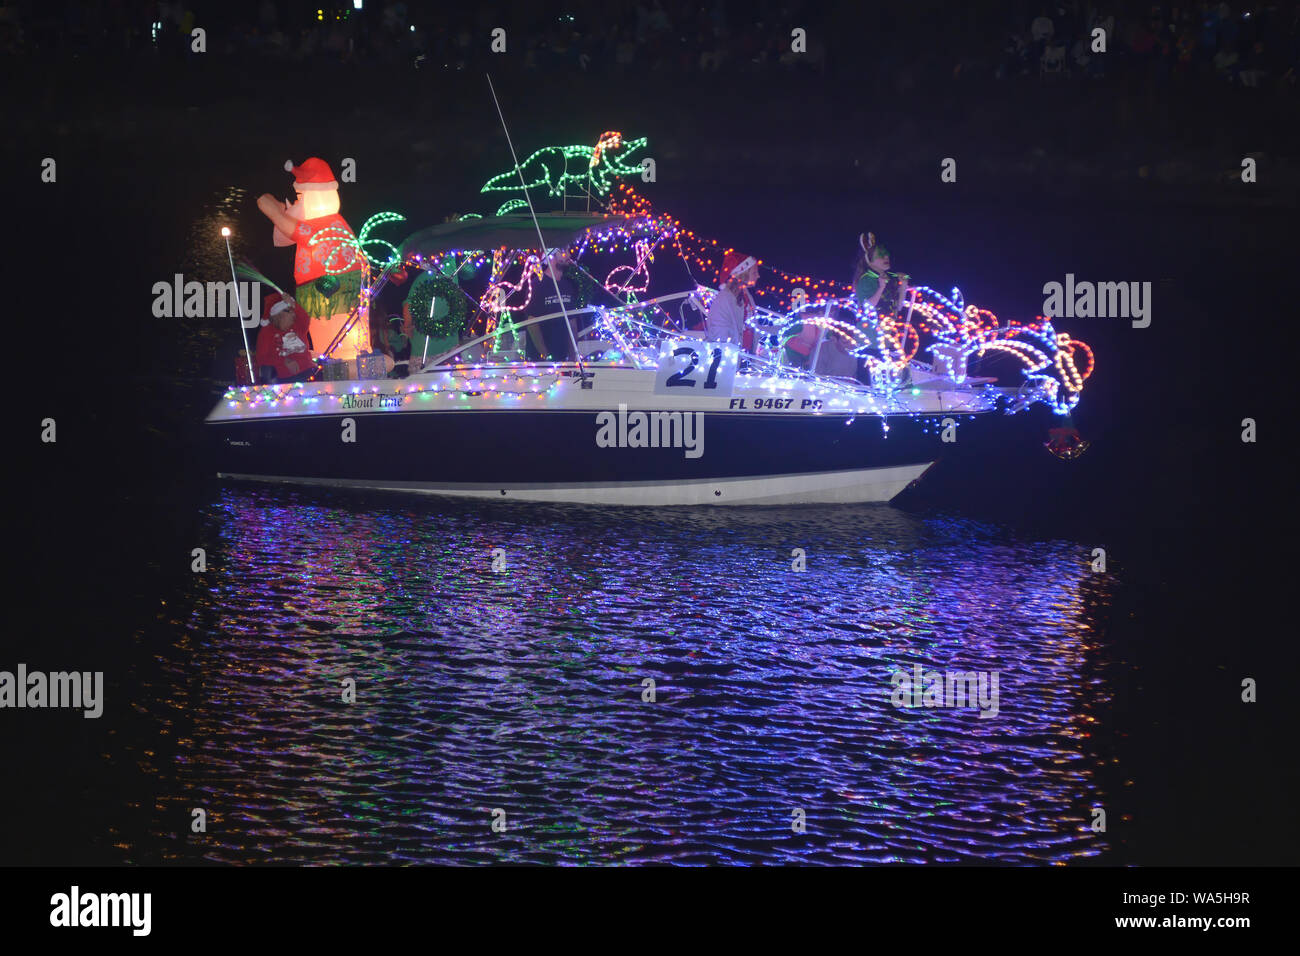 New Smyrna Christmas Boat Parade 2021 Christmas Boat Parade Florida High Resolution Stock Photography And Images Alamy